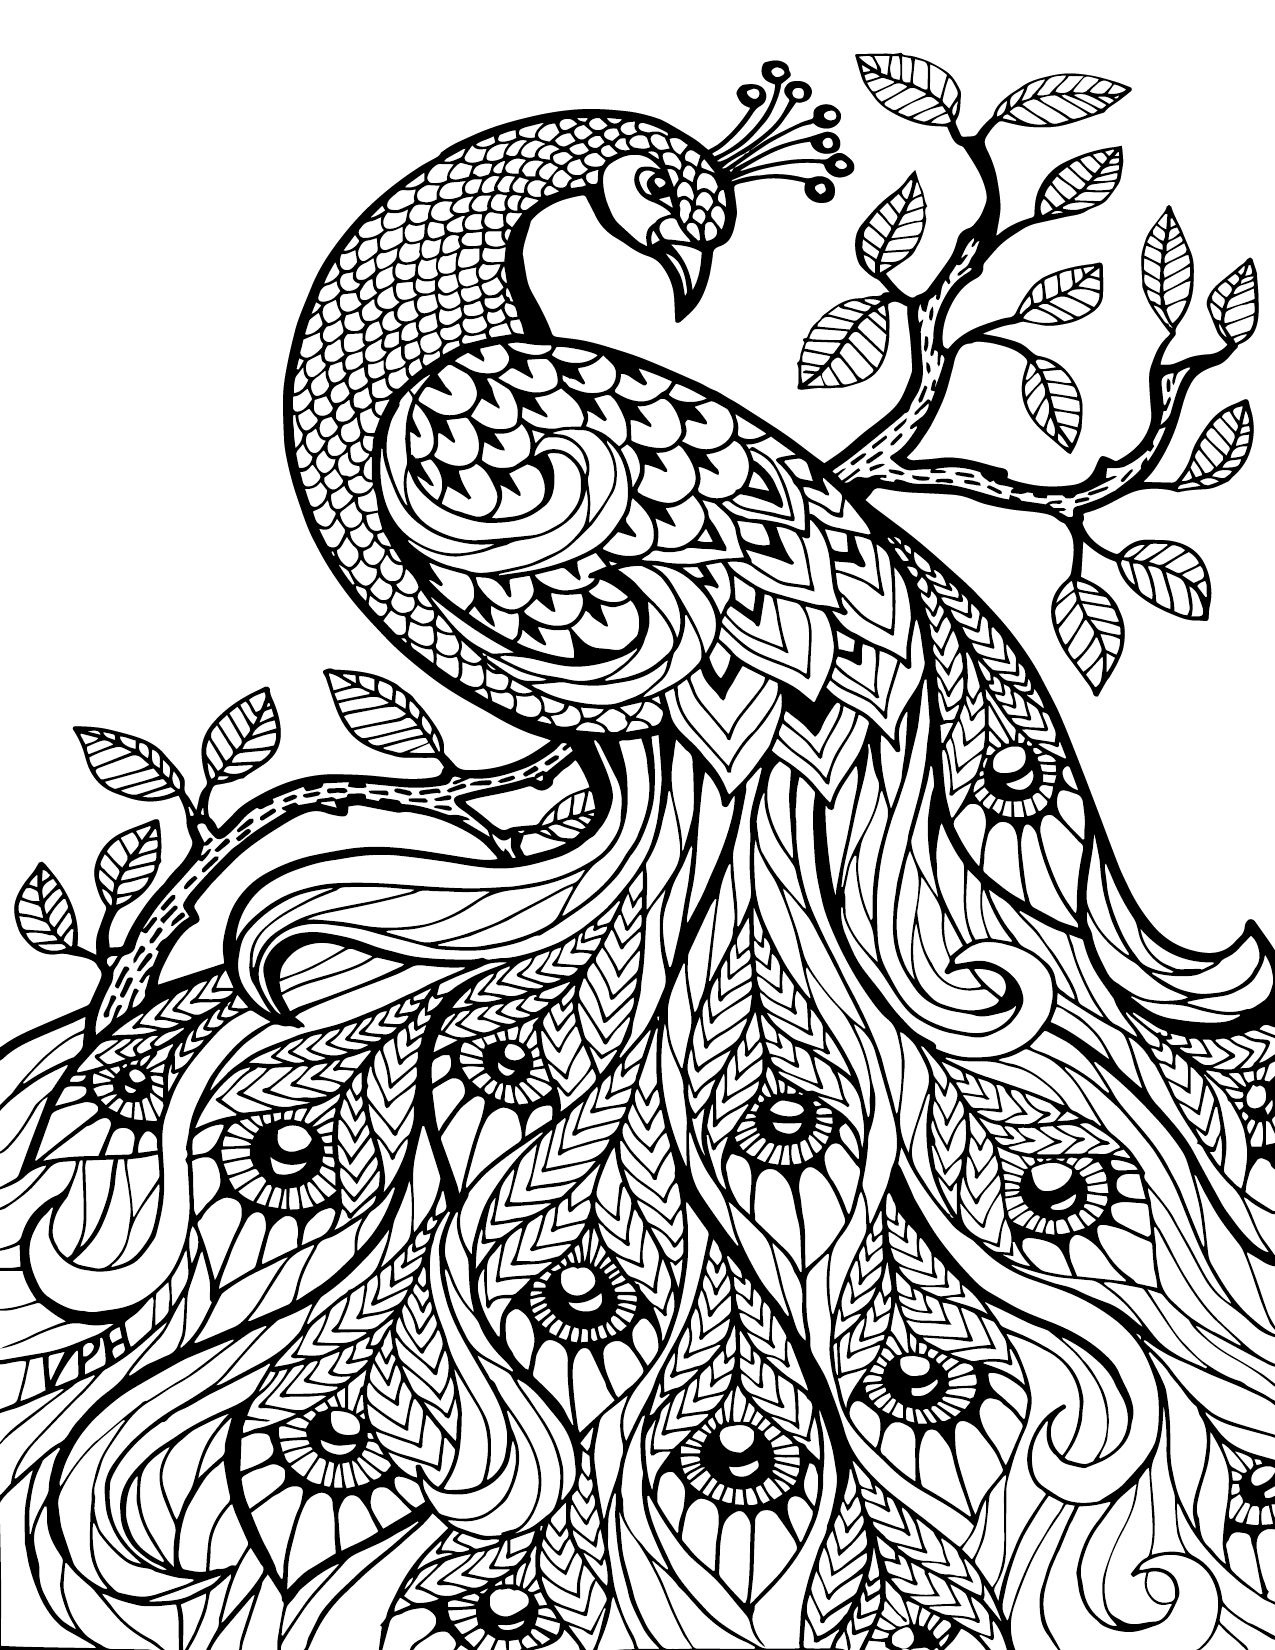 Free Printable Coloring Pages For Adults Only Image 36 Art - Www Free Printable Coloring Pages